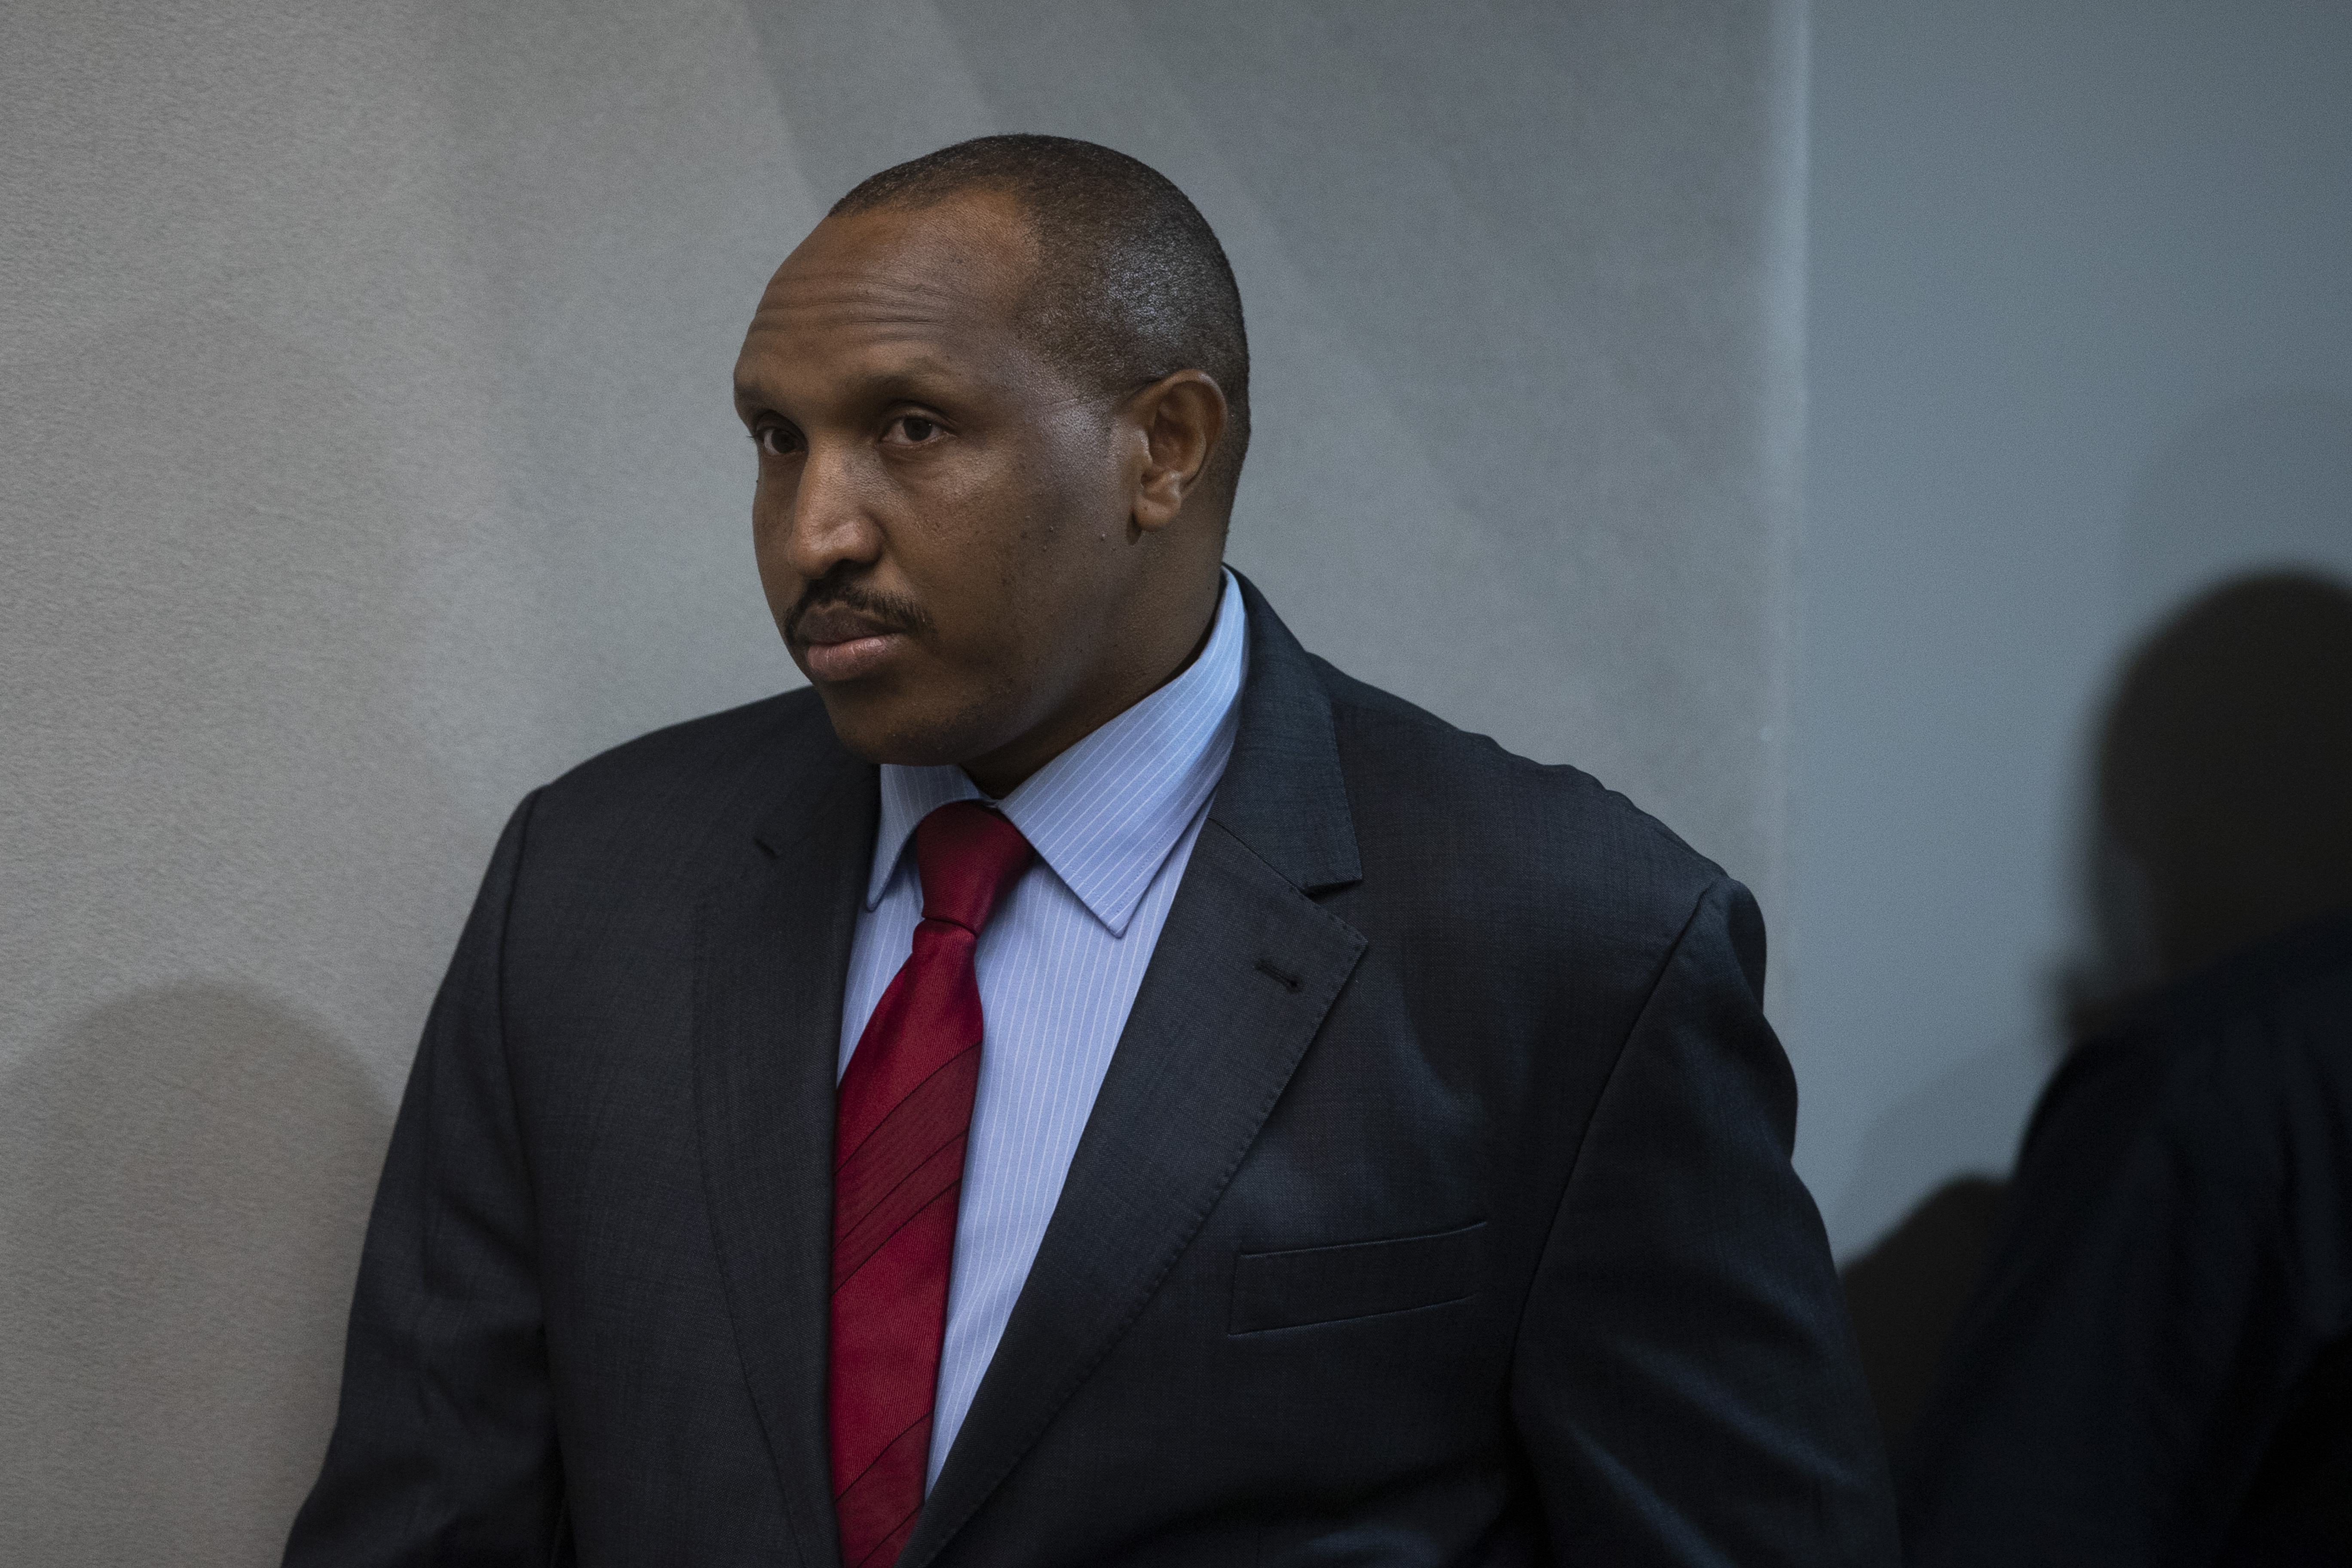 Congolese militia commander Bosco Ntaganda enters the courtroom of the International Criminal Court, or ICC, to hear the sentence in his trial in The Hague, Netherlands, Thursday, Nov. 7, 2019.